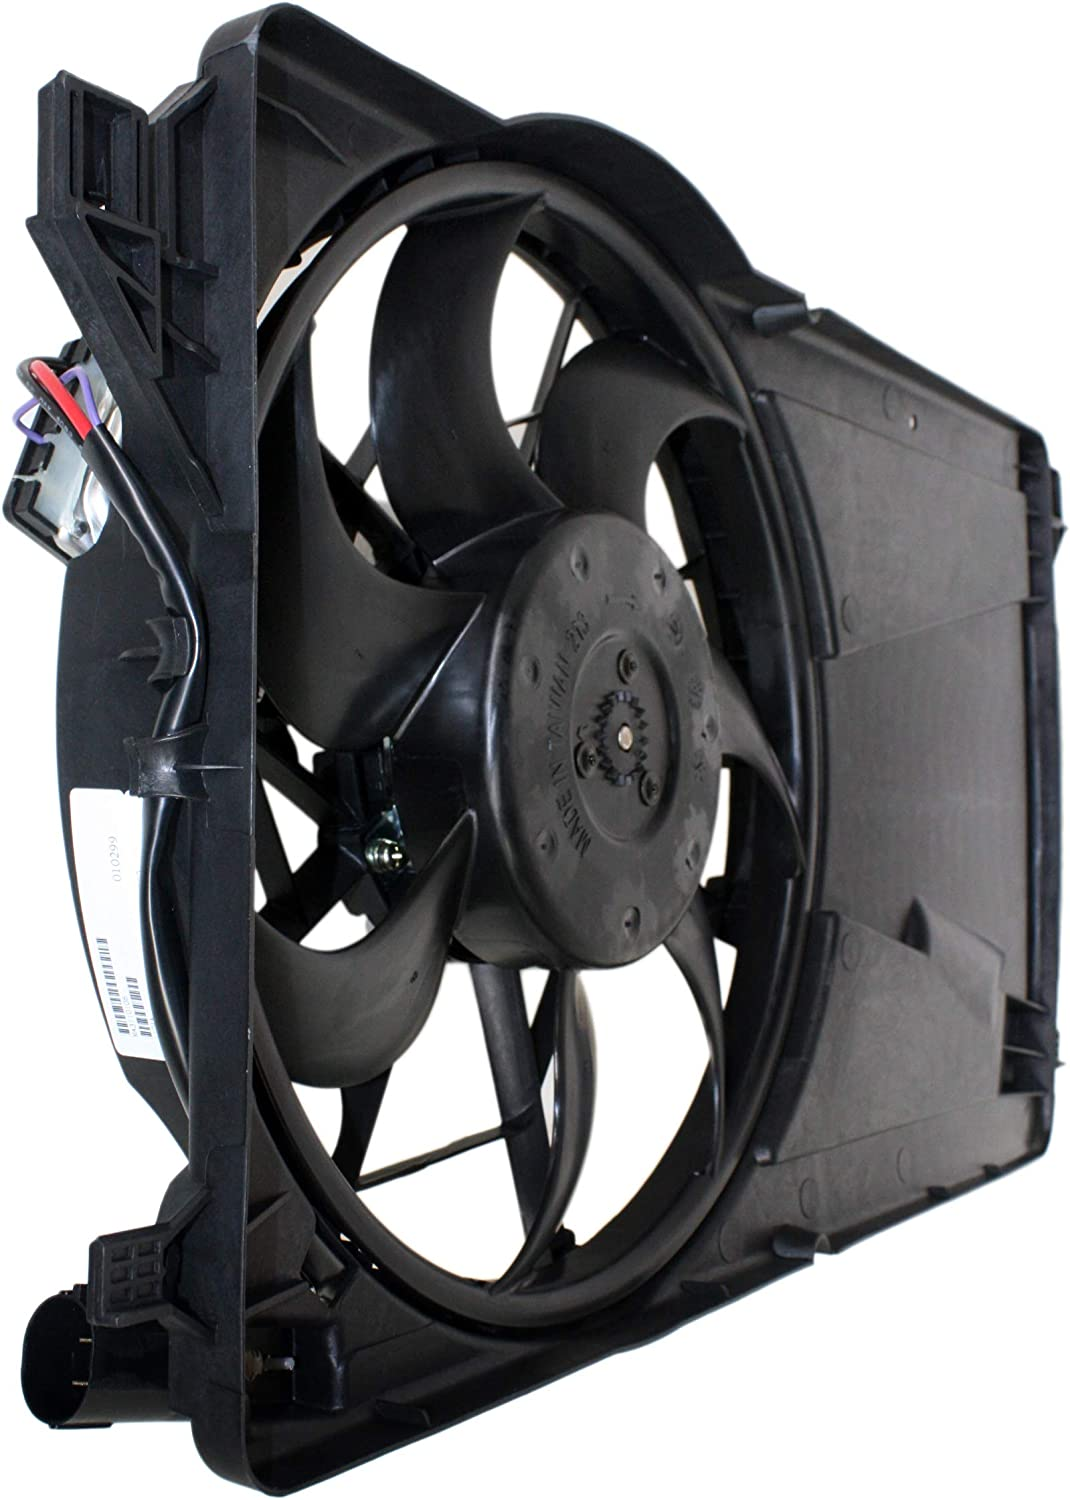 Garage-Pro Cooling Fan Assembly for MAZDA 3 2004-2009 with Control Module